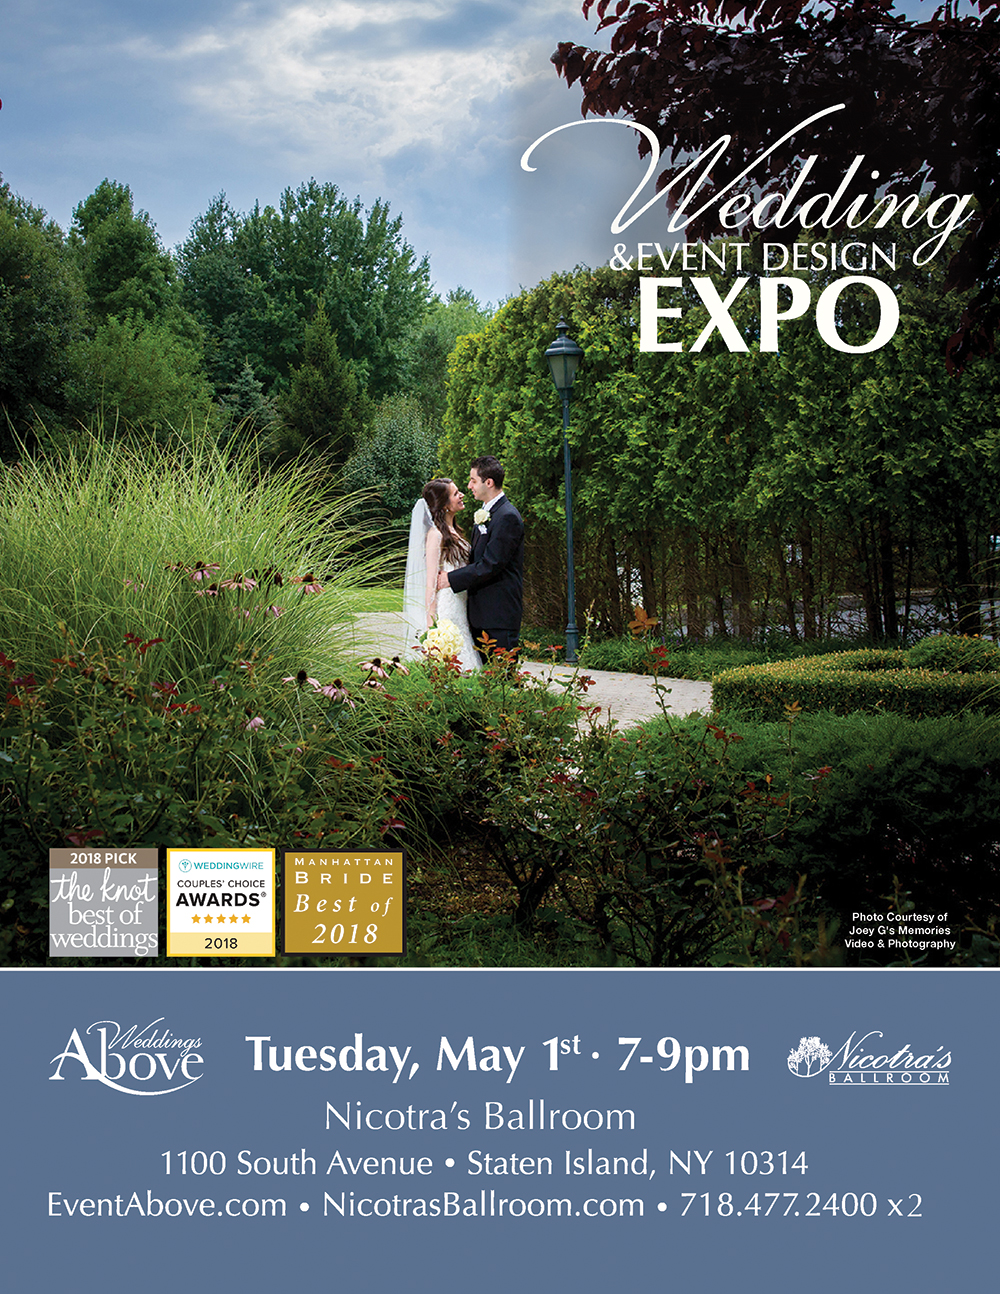 Wedding and Event Design expo May 1st